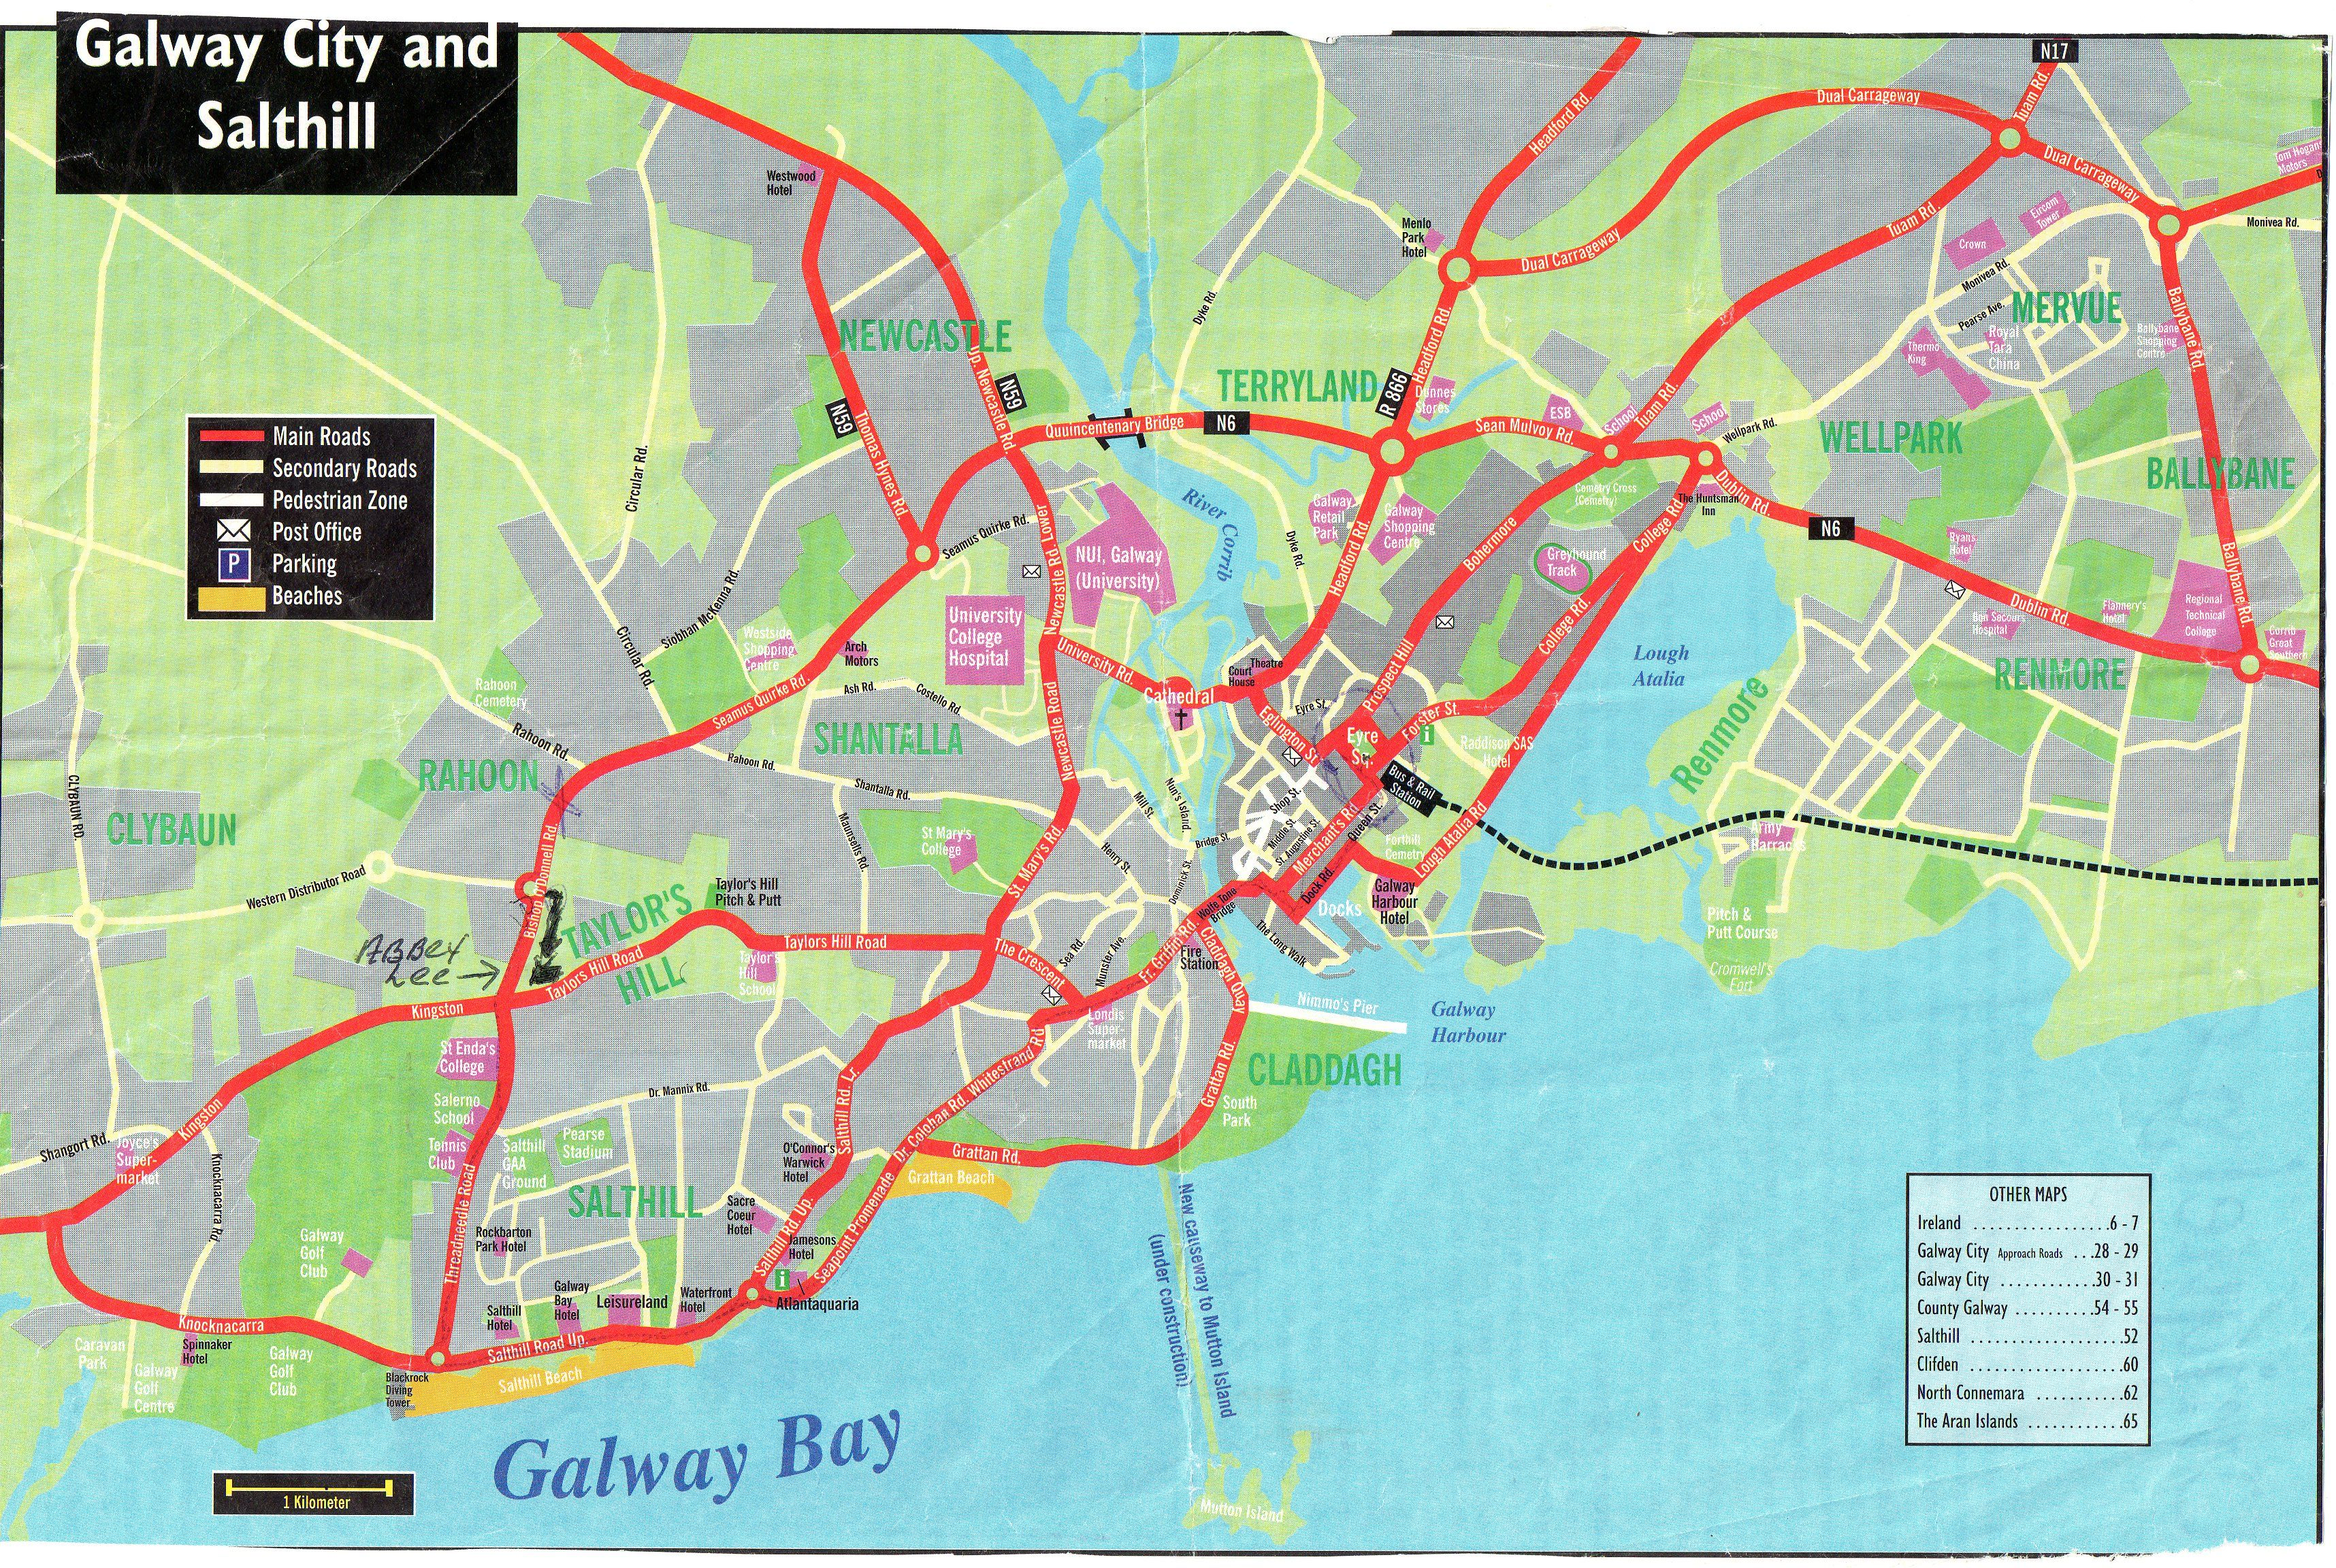 Bathroom Makeover Galway this is a map of galway city and salthill the beach area ,near